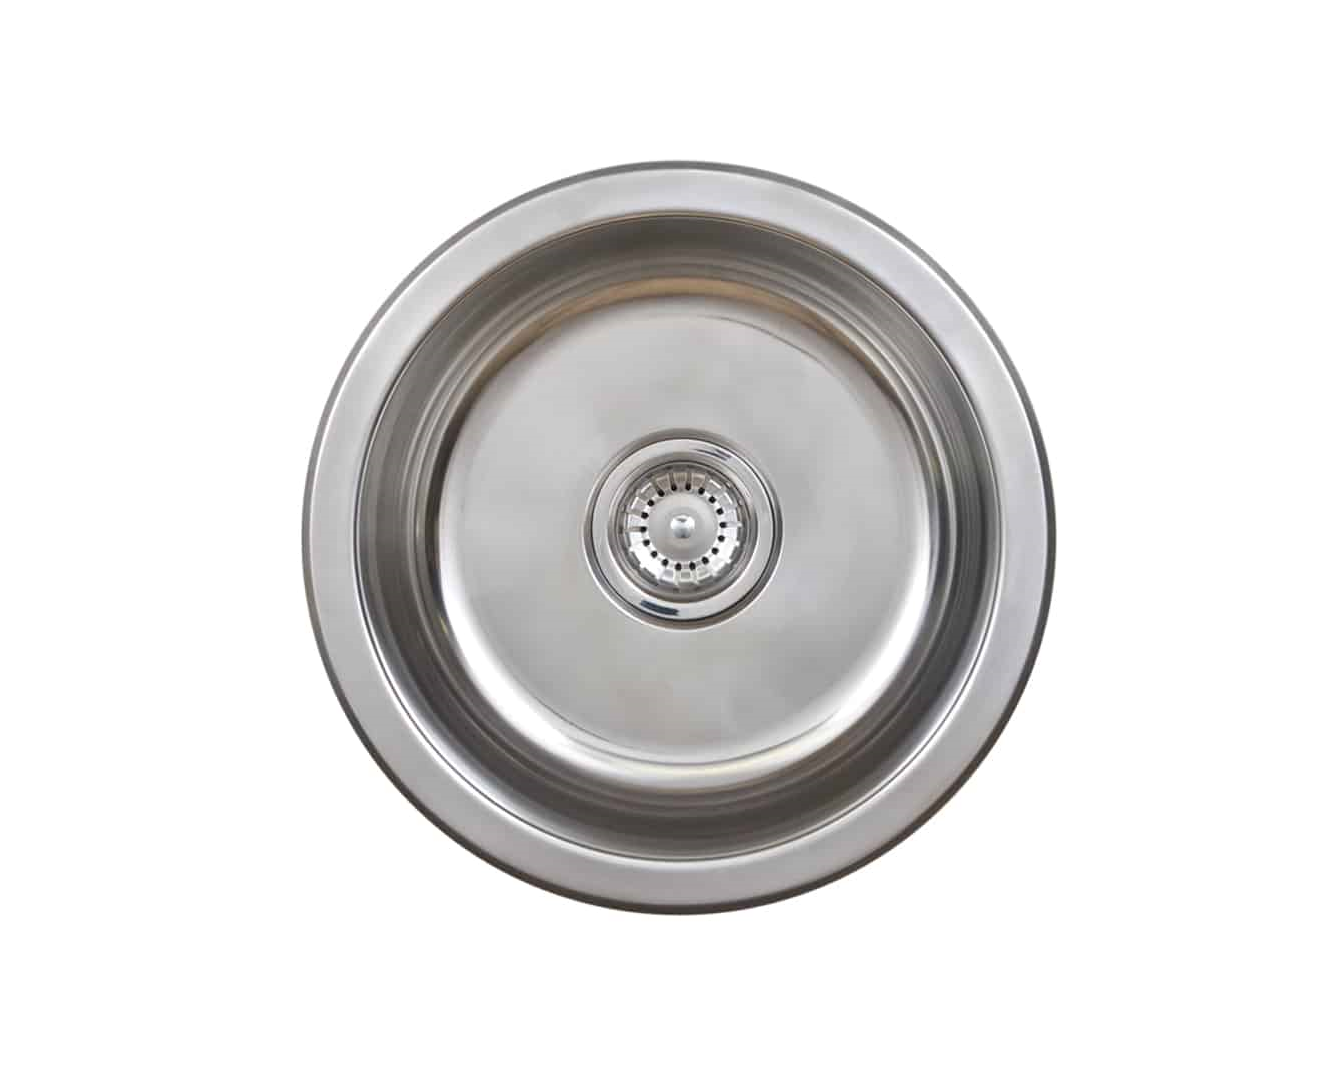 Seima Kitchen Laundry Sink Single Round Bowl Above Mount 304 Stainless Steel ACERO SKS-003